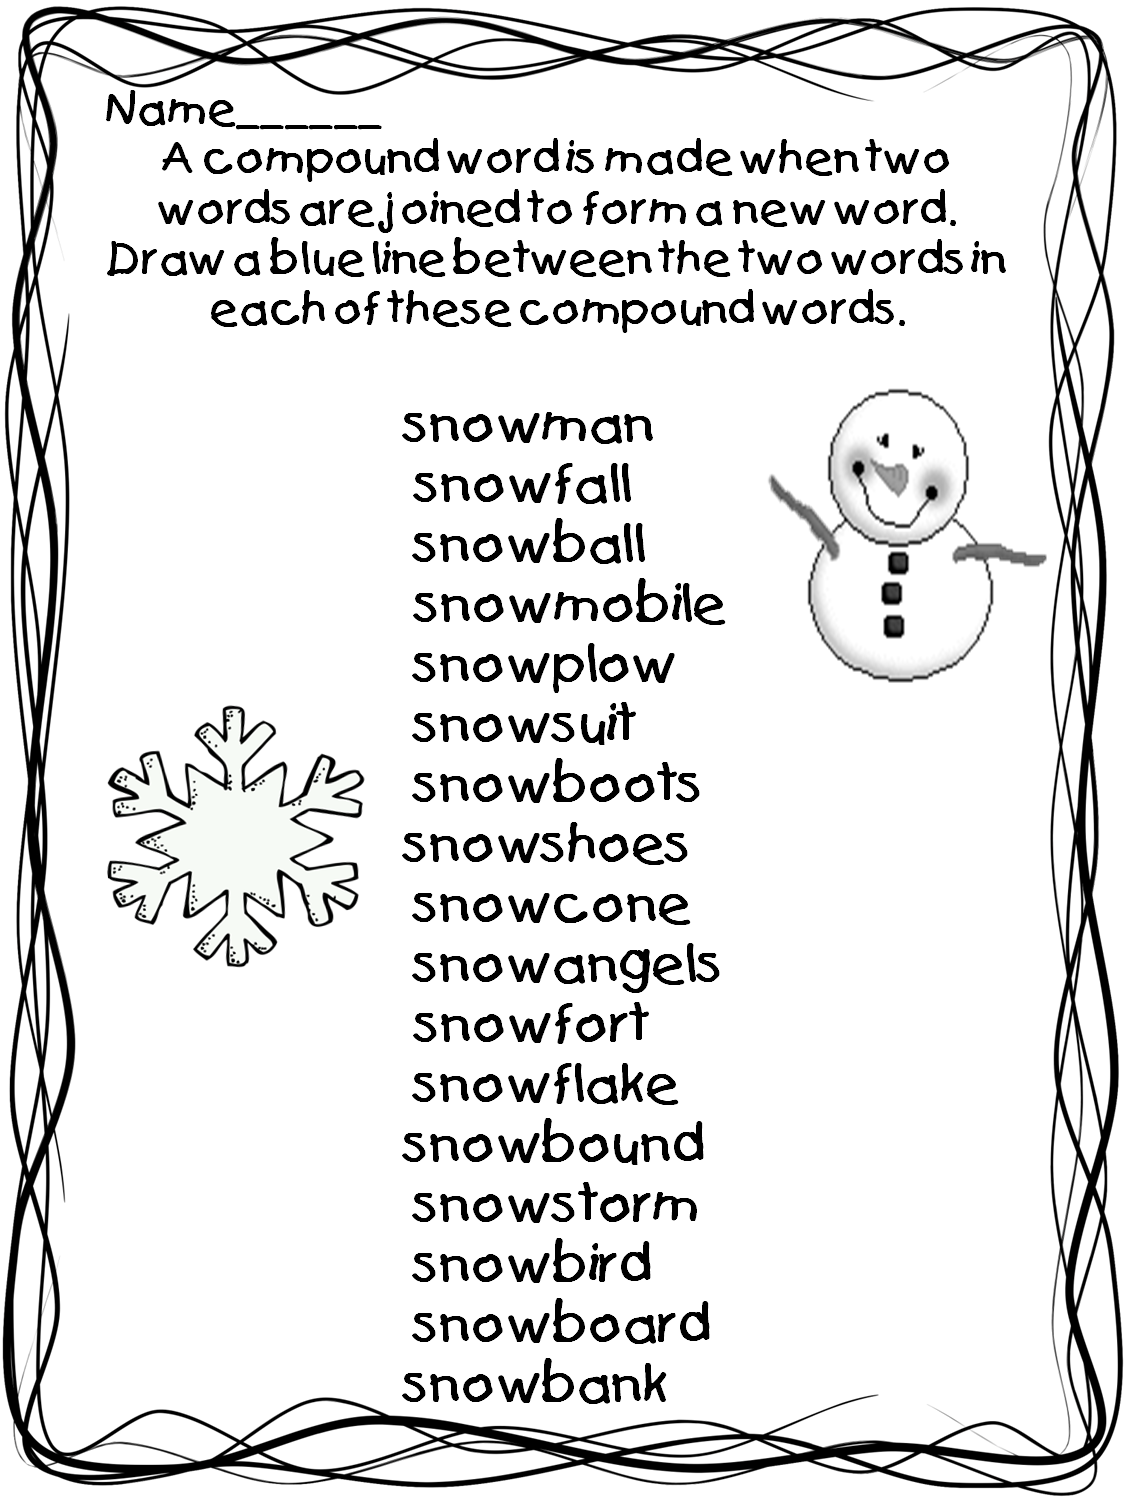 Worksheet First Grade Compound Words 1000 images about compound words on pinterest anchor charts word work and coloring